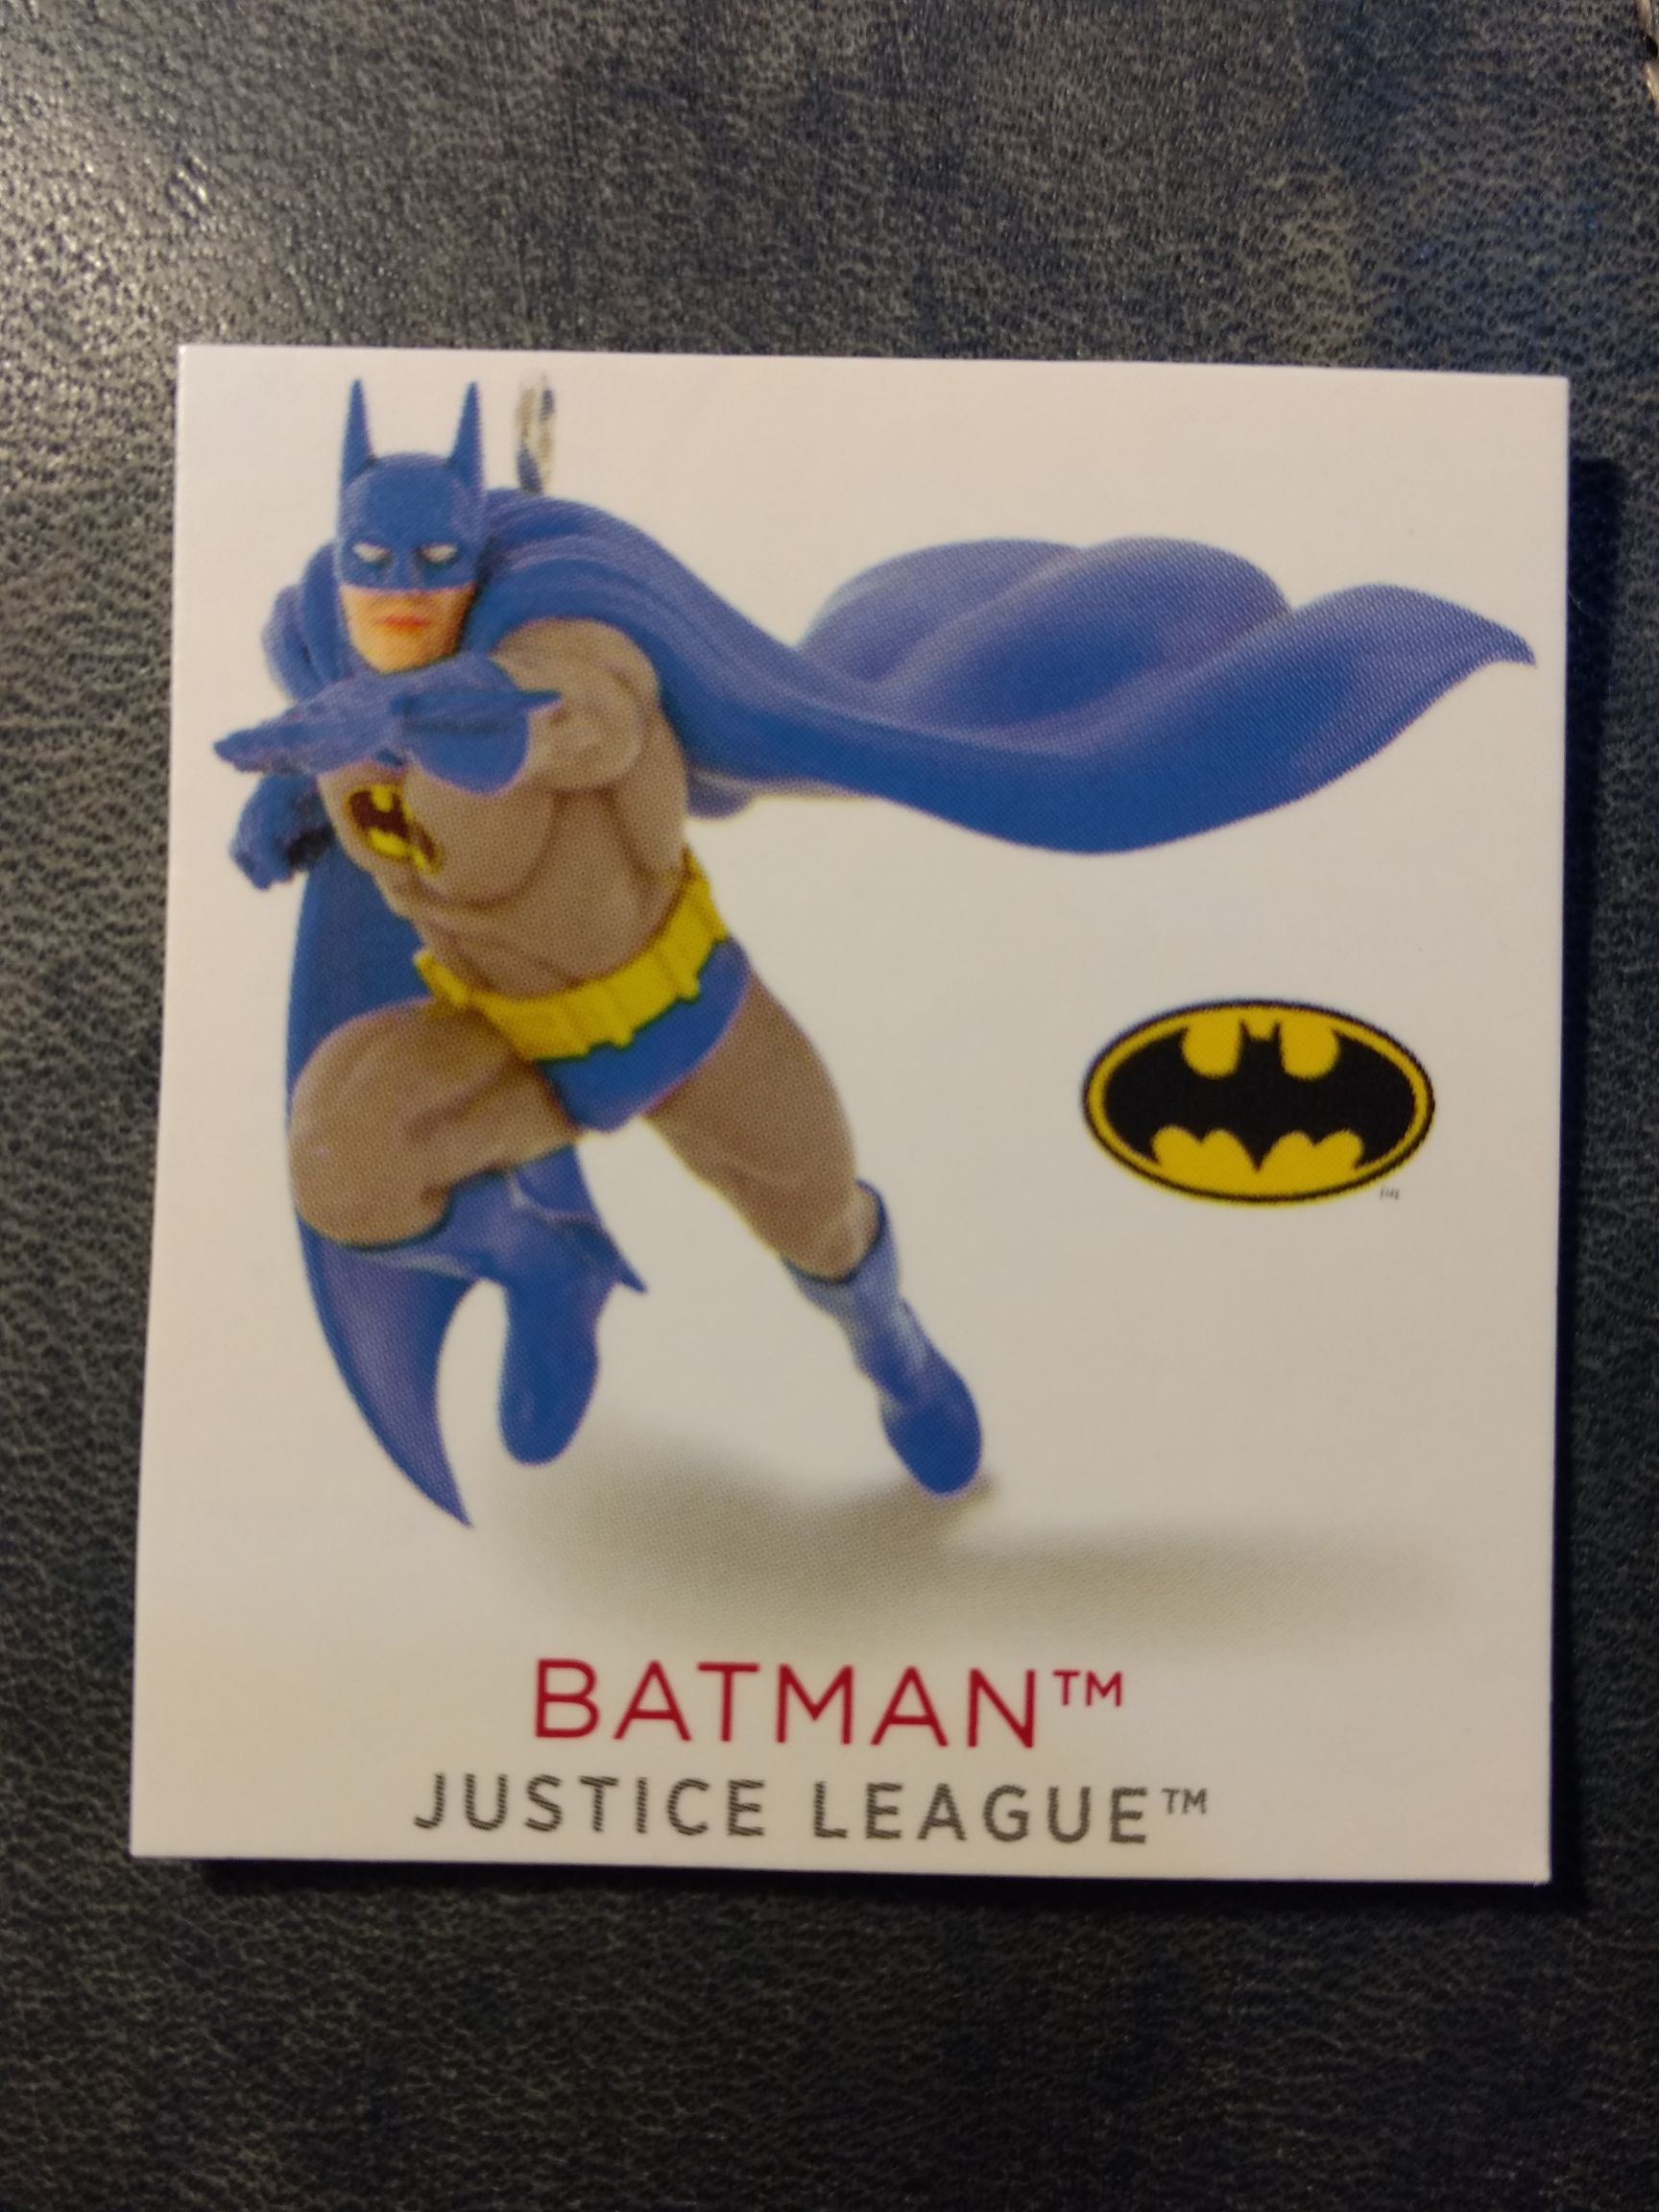 Z - DC Comics - Batman Ornament - Hallmark front image (front cover)